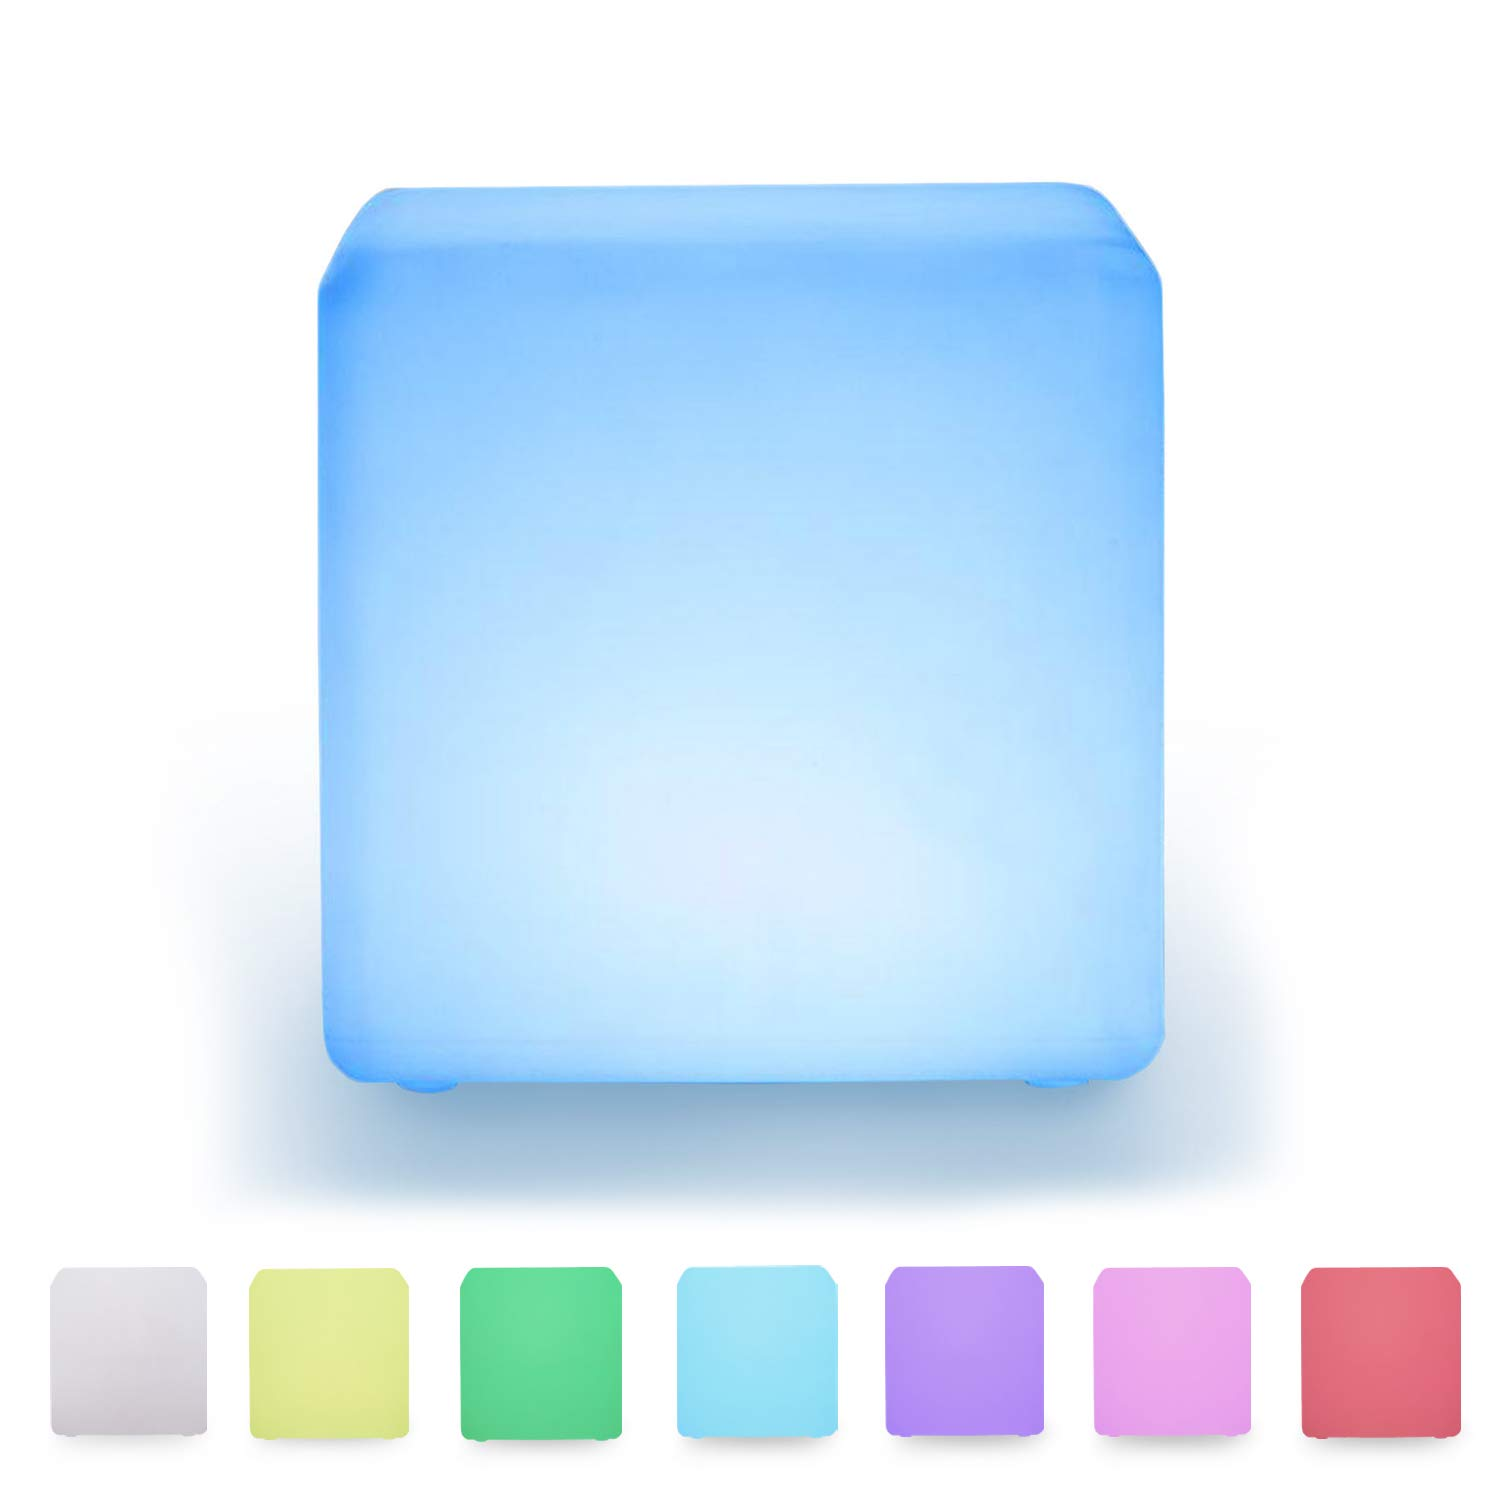 LOFTEK LED Light Cube: 16-inch Light Cube Seats, Color Changing Kid's Stool, Rechargeable and Cordless Bar Table,UL Listed Adapter, 4400mAh Capacity, for Sensory Education, Party Decoration